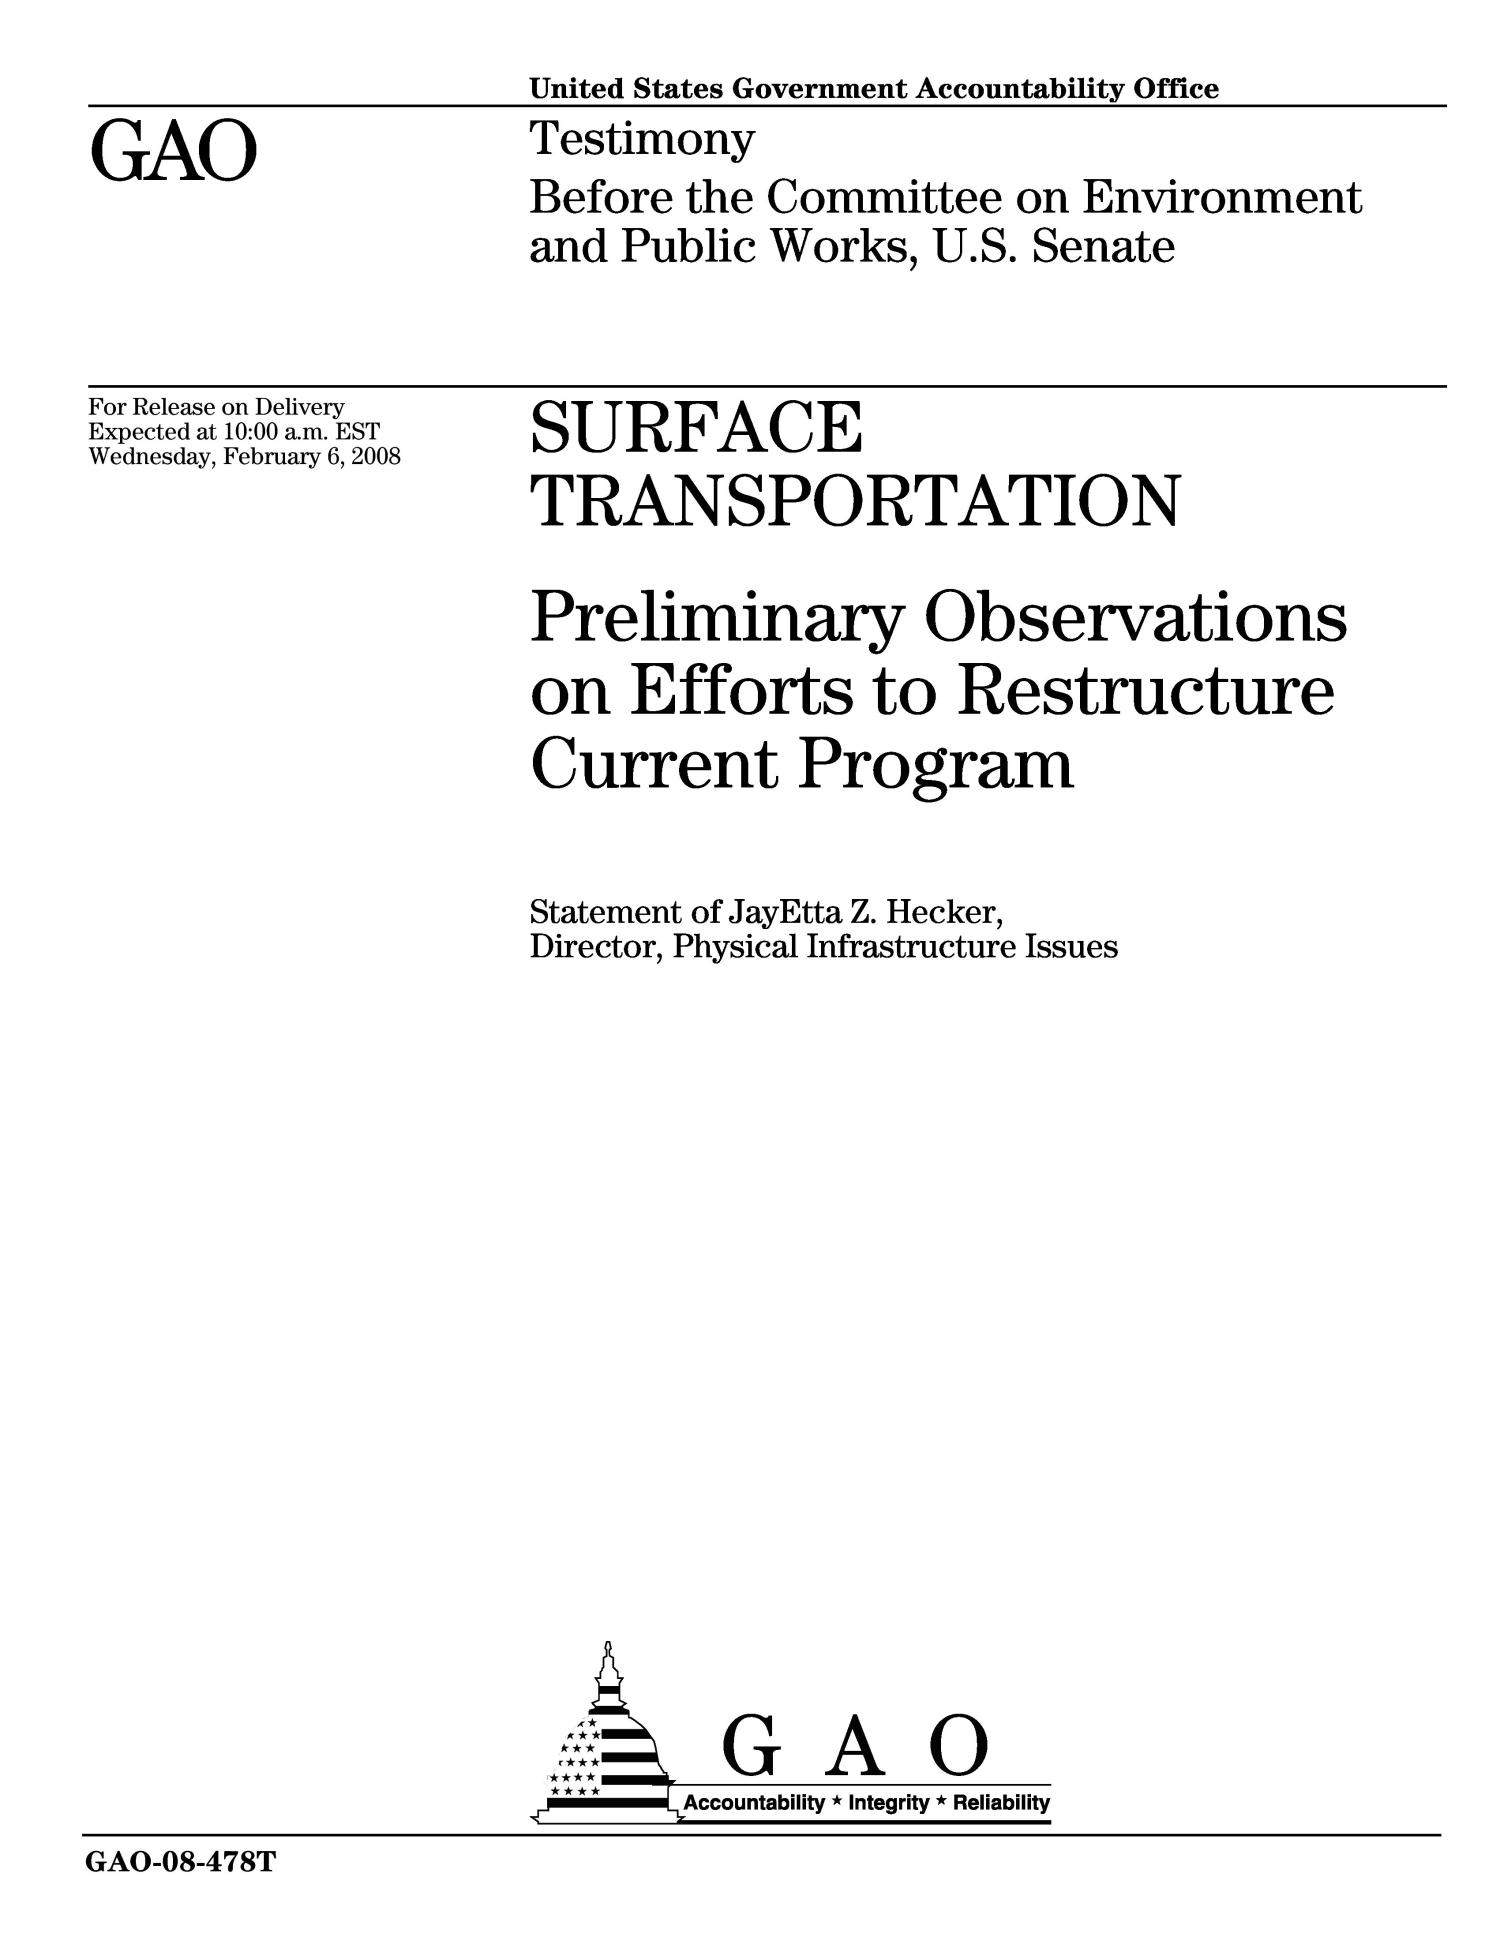 Surface Transportation: Preliminary Observations on Efforts to Restructure Current Program                                                                                                      [Sequence #]: 1 of 22